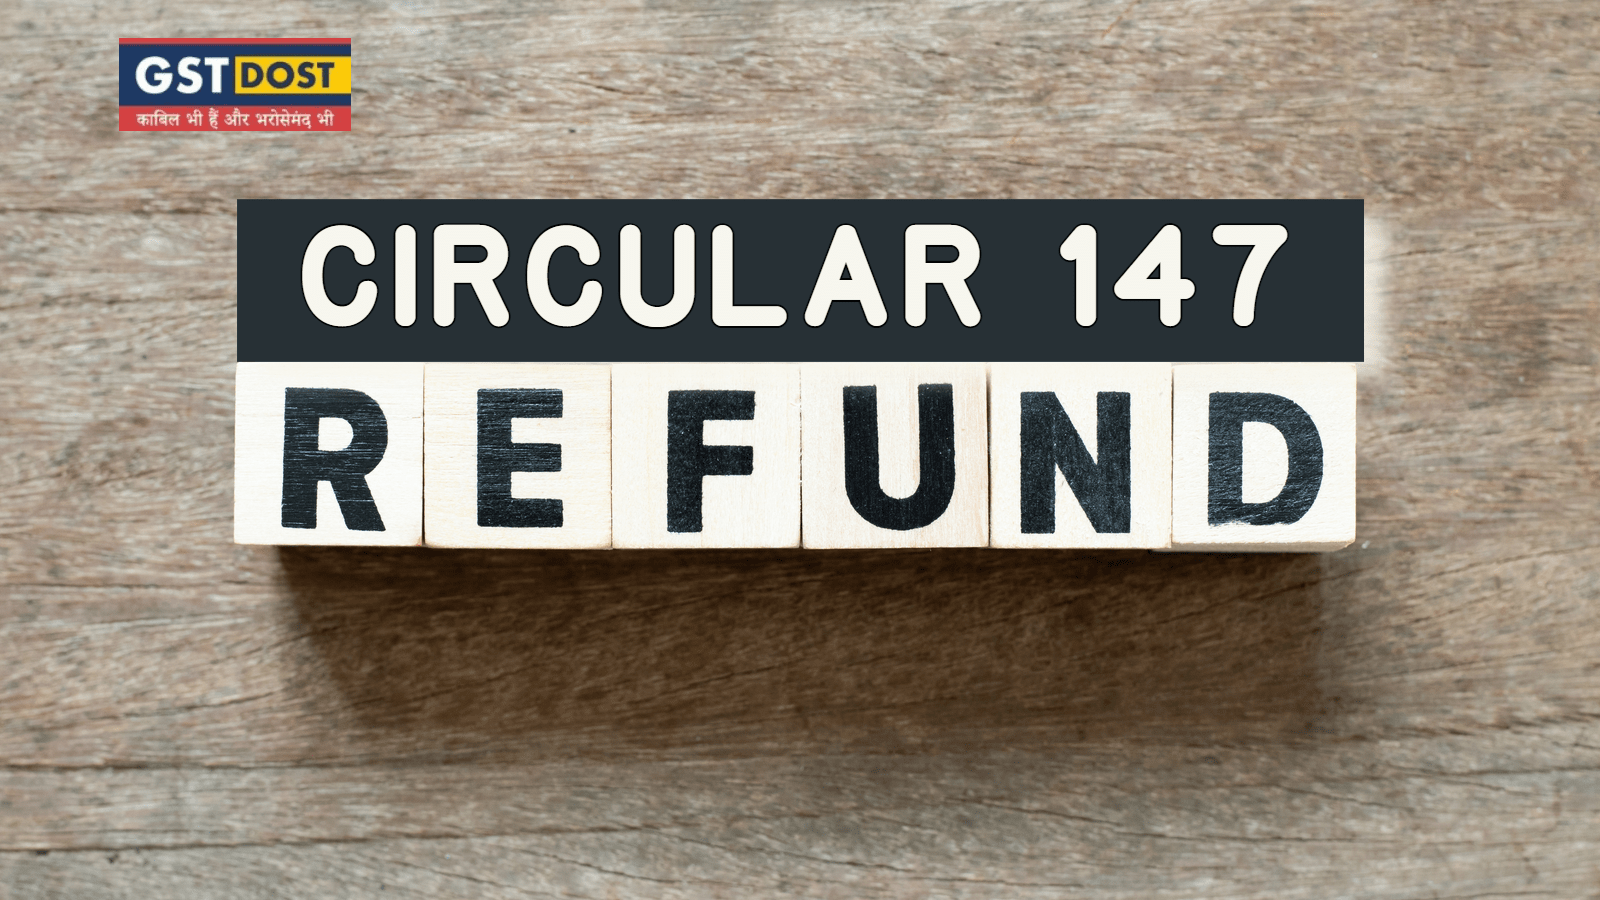 Clarification on issues relating to GST refunds  trhroguh CGST Circular 147